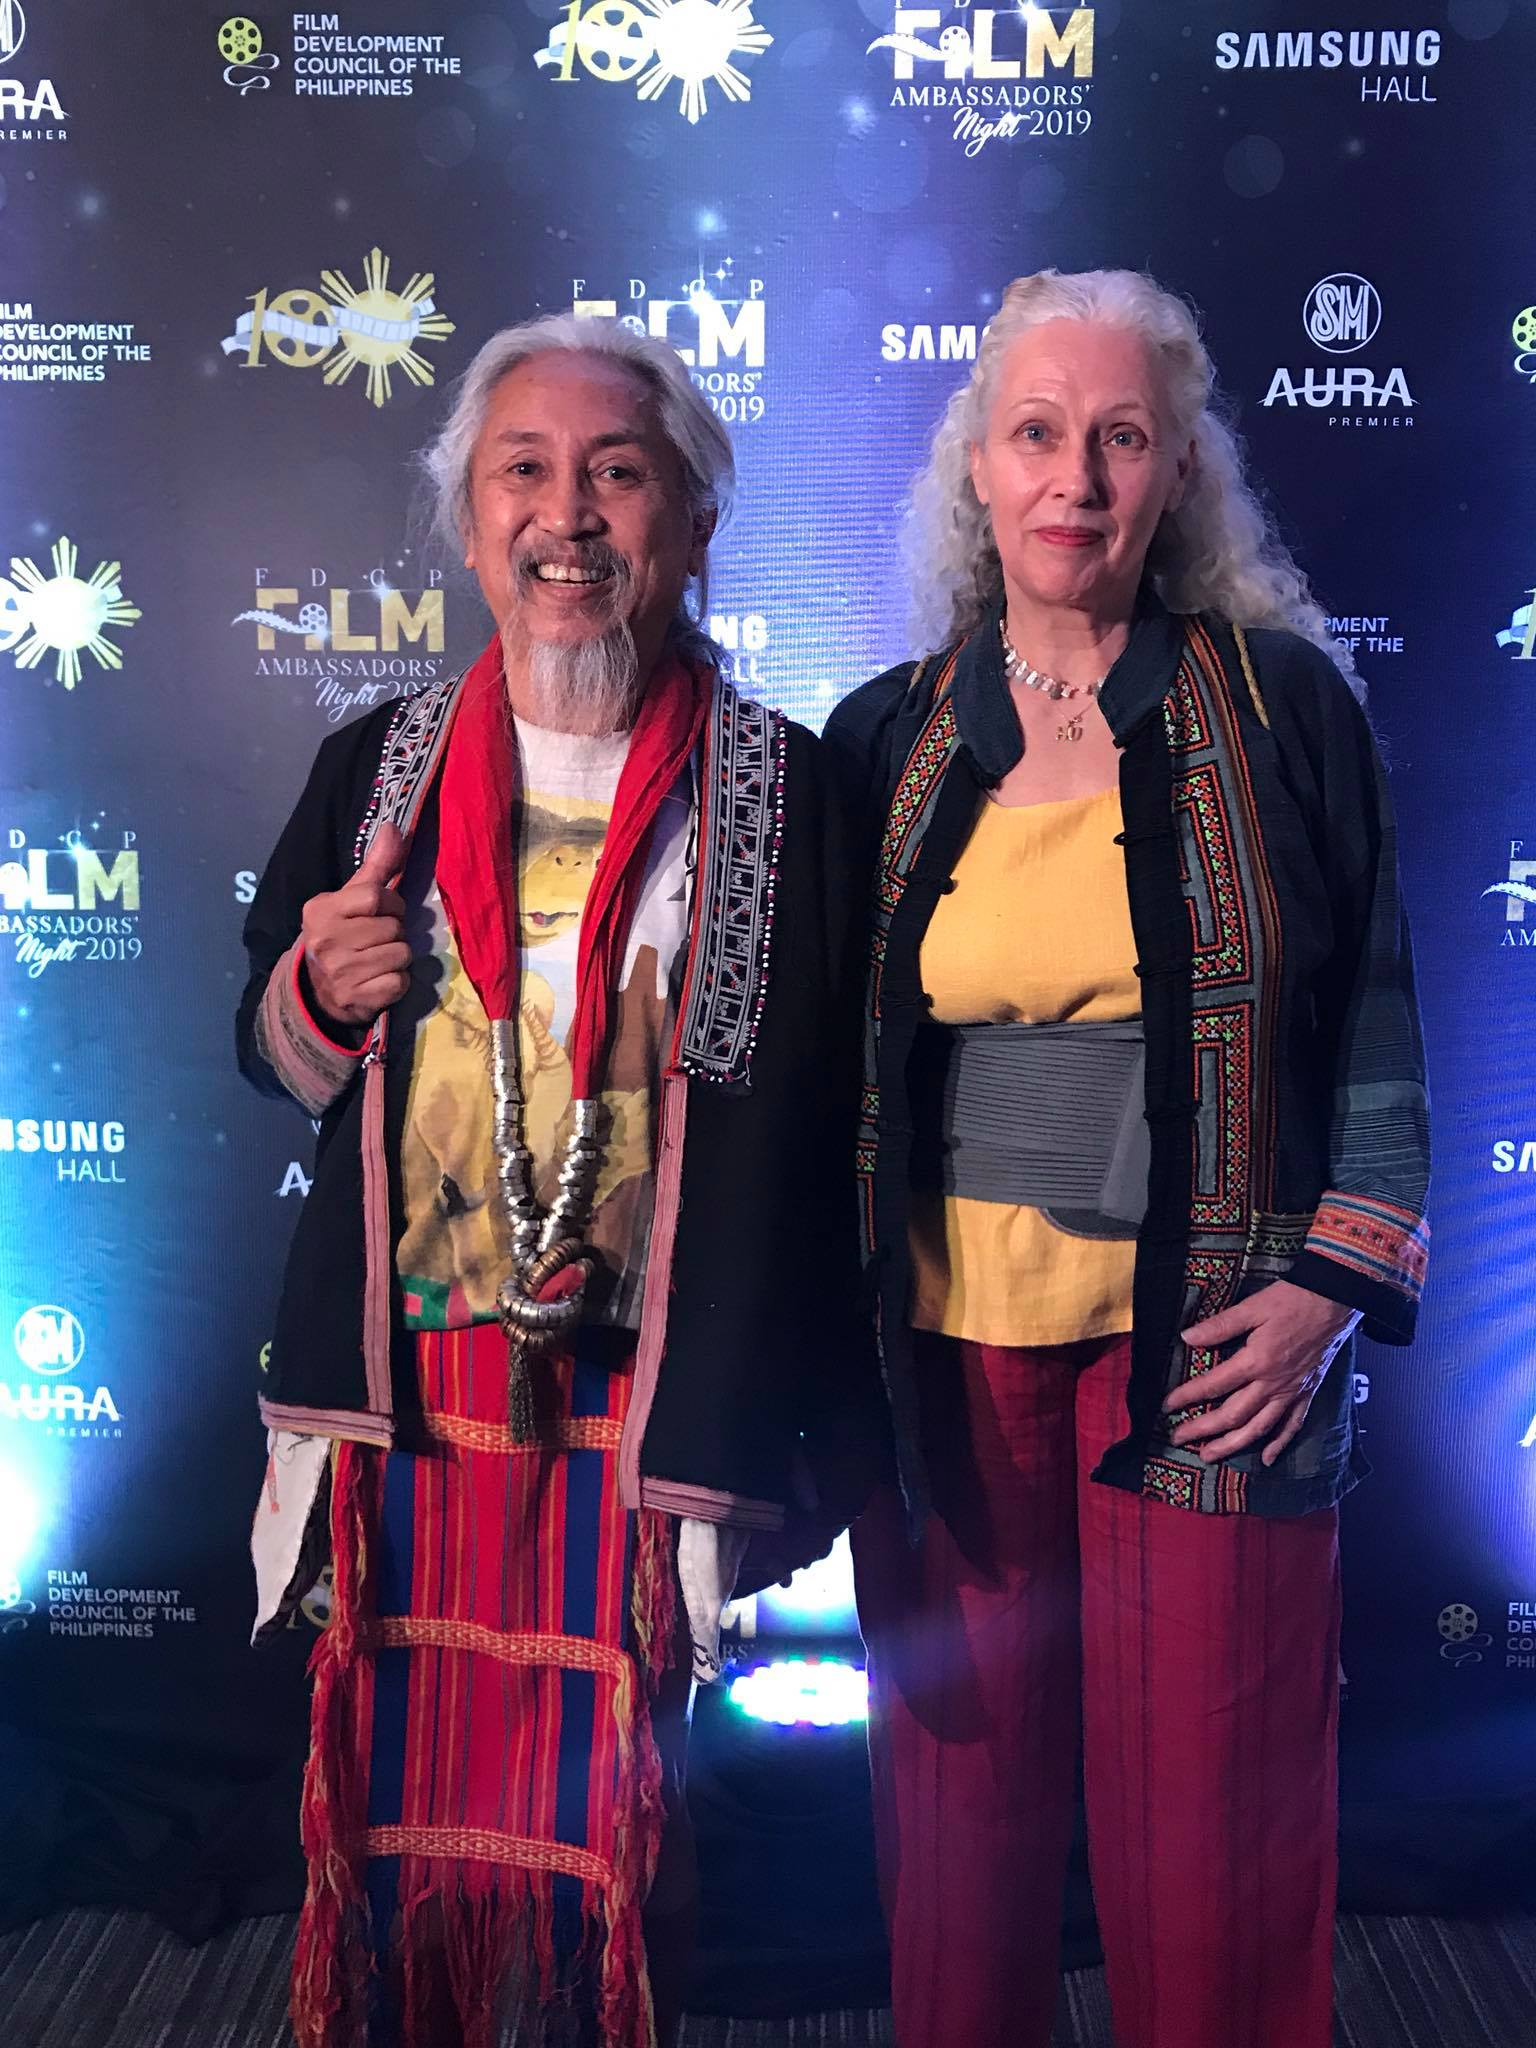 HONOREE. Filmmaker Kidlat Tahimik and his wife Katrin.